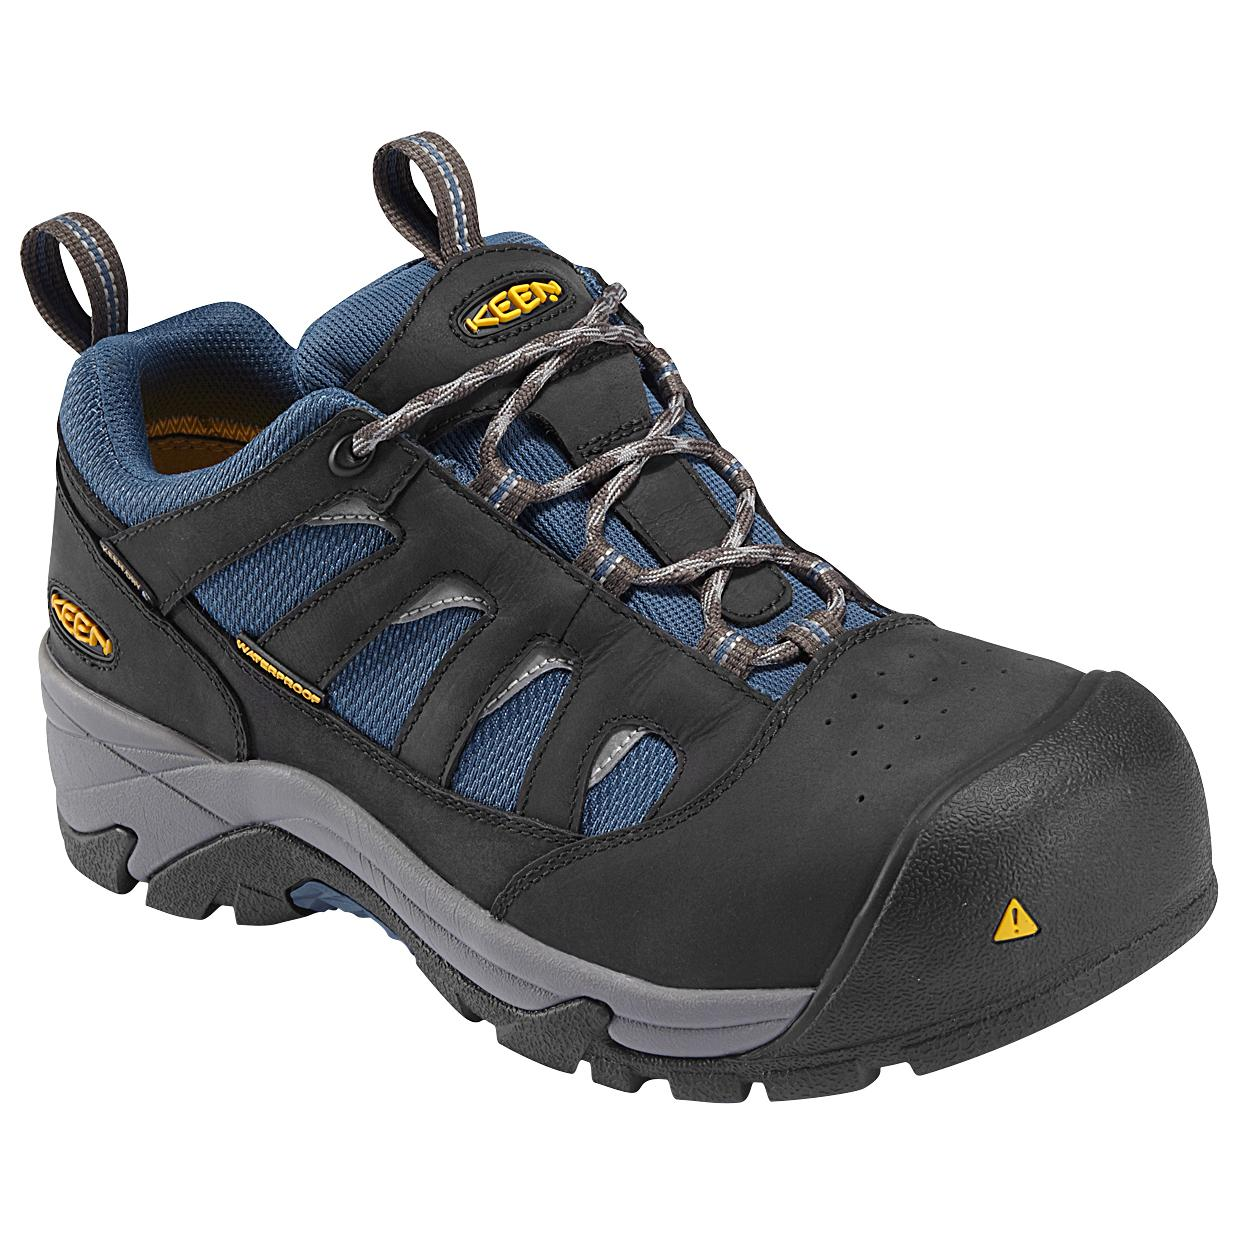 Keen Mens Shoe Waterproof